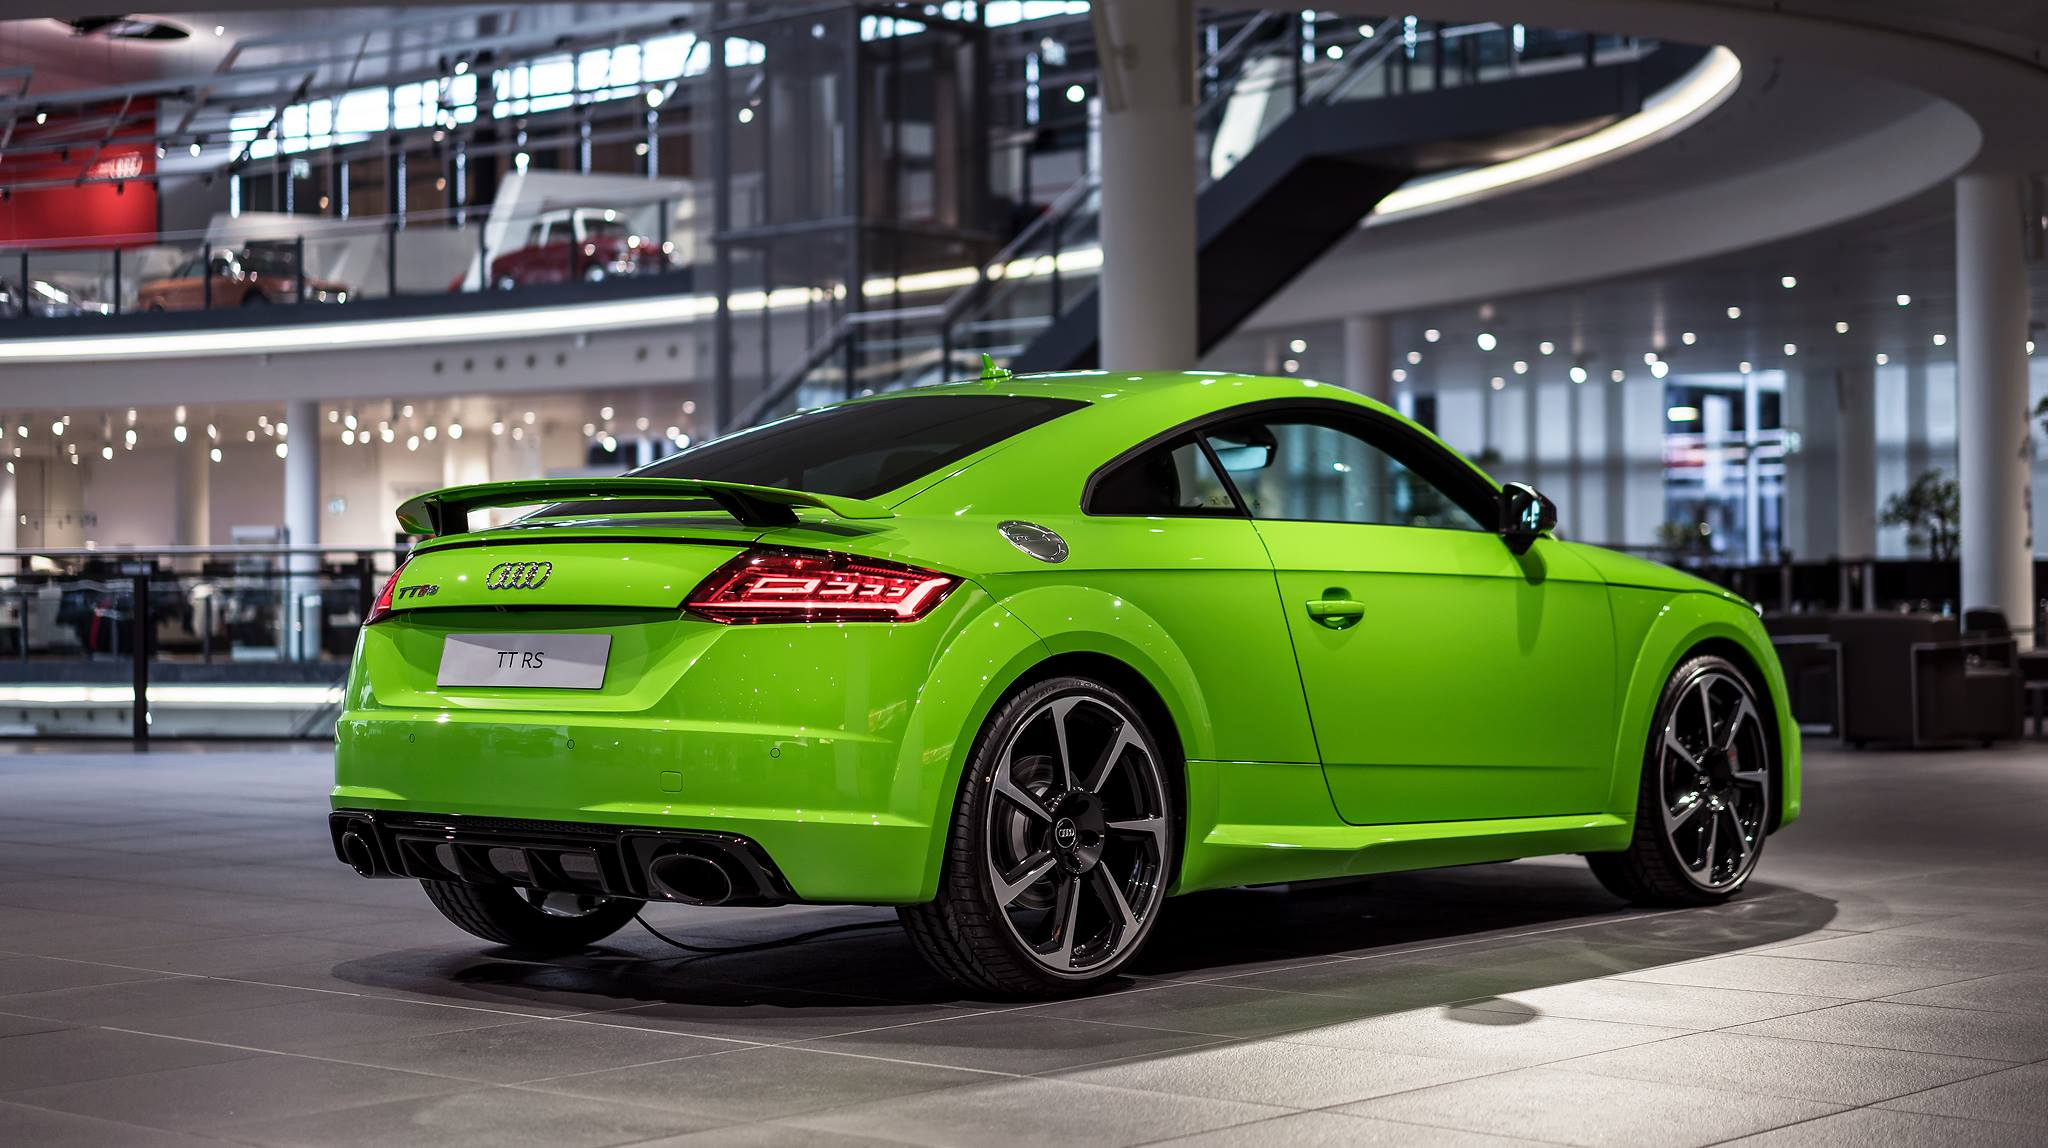 Dark green car paint colors -  2017 Audi Tt Rs In Lime Green Looks Like A Tiny Exotic Car